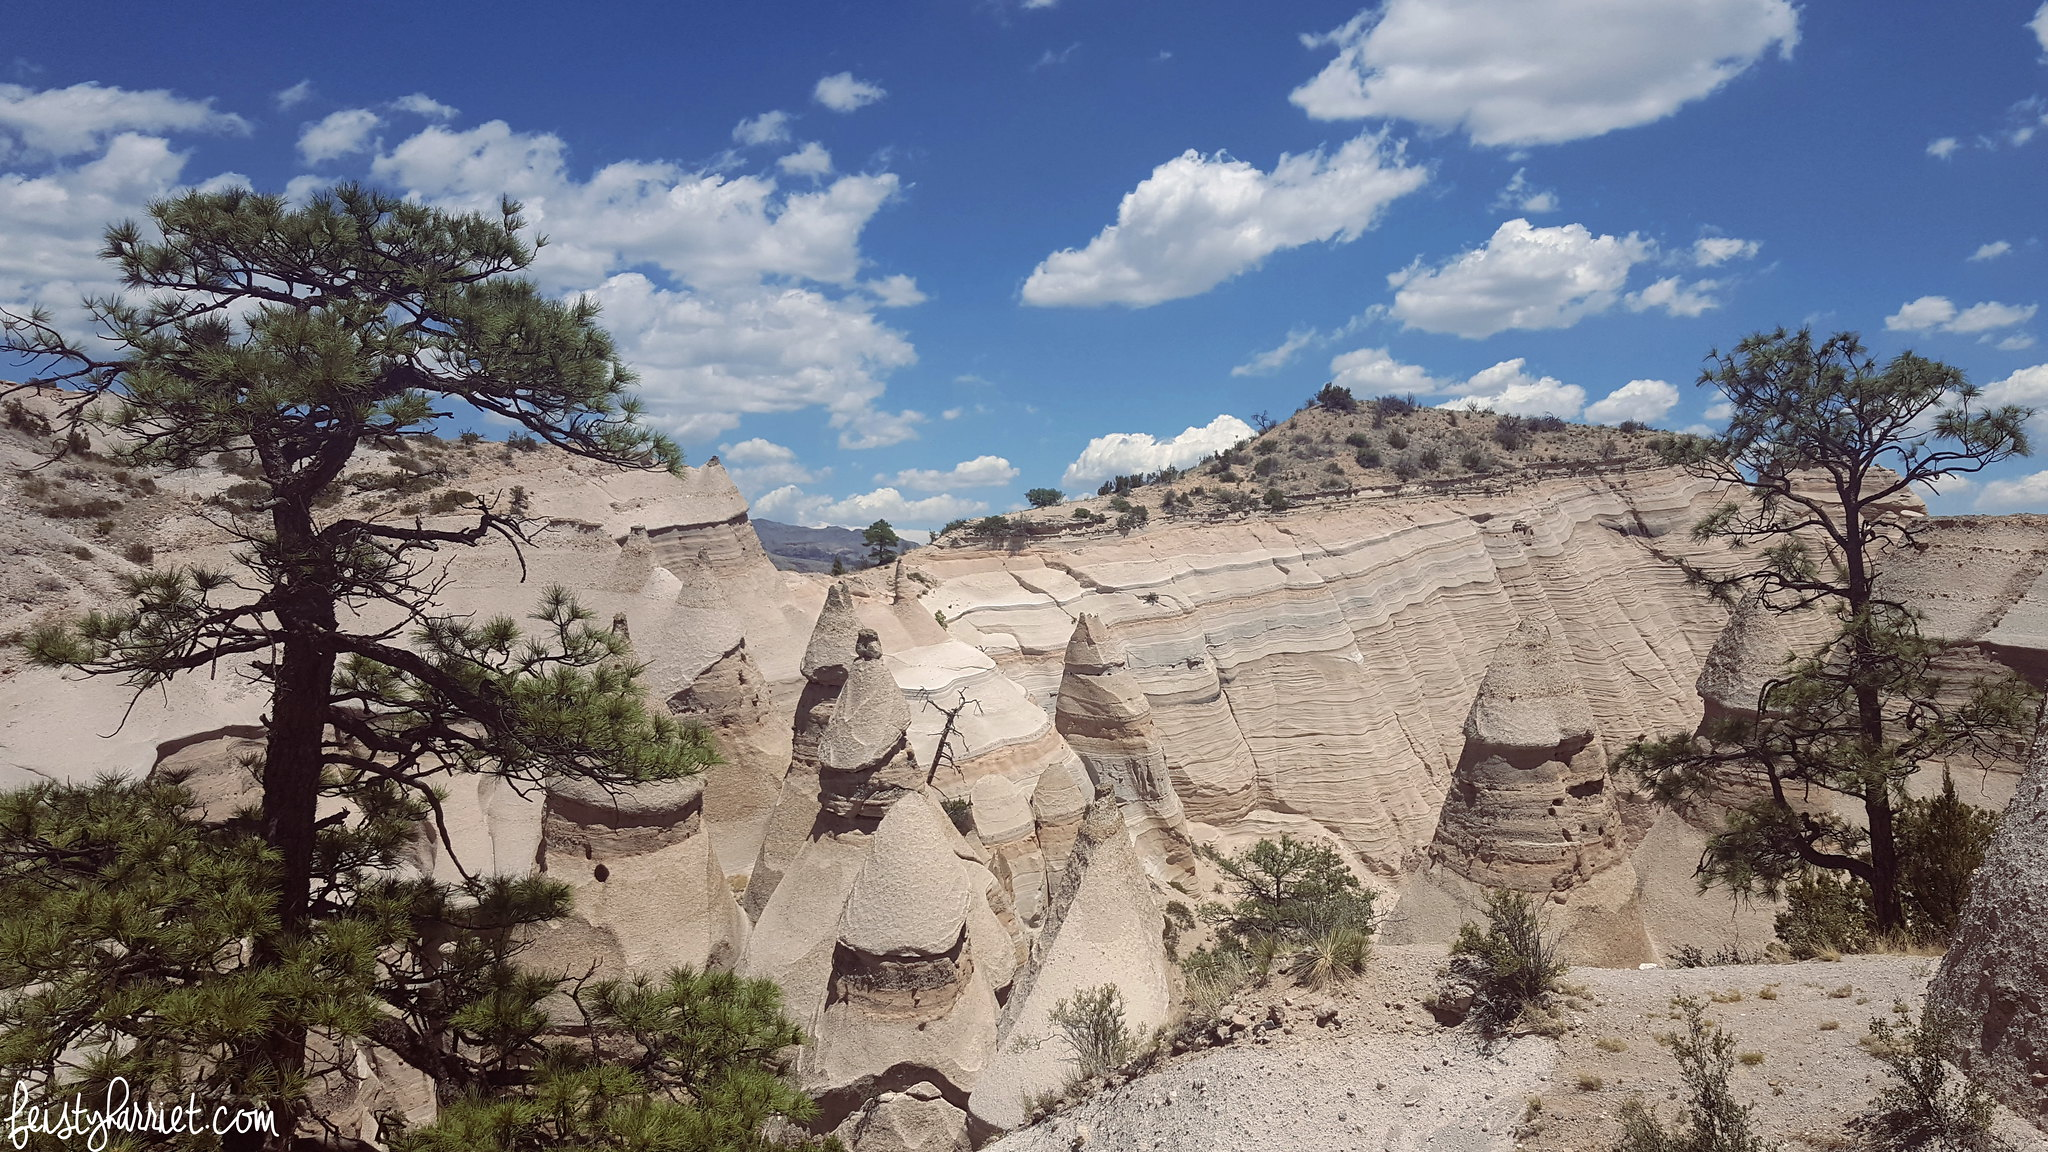 Kasha-Katuwe Tent Rocks NM_feistyharriet_July 2016 (5)